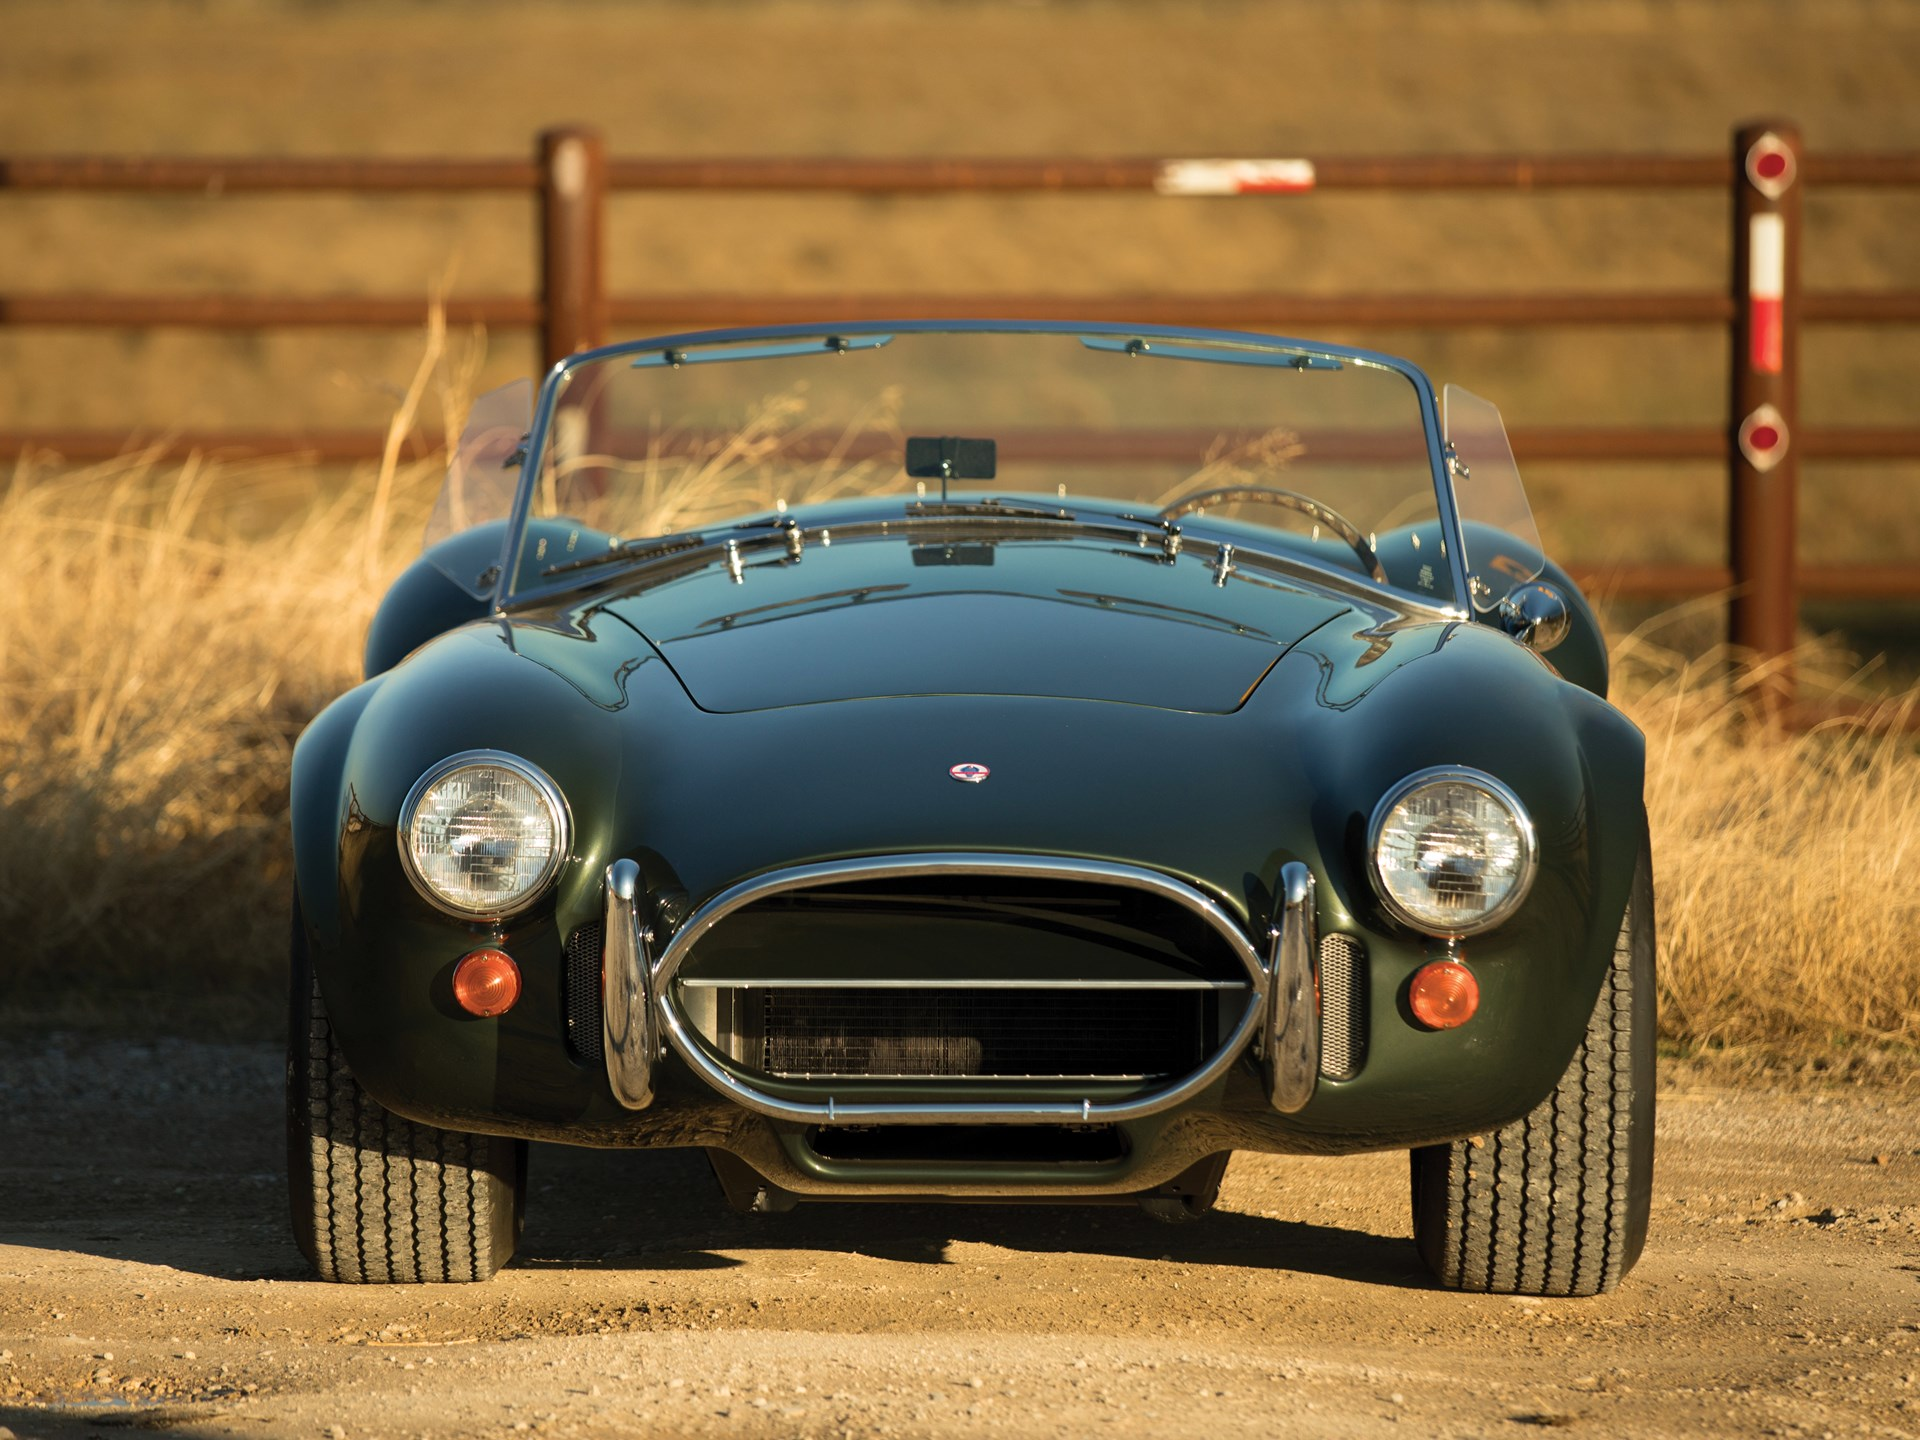 1967 Shelby 427 Cobra front end